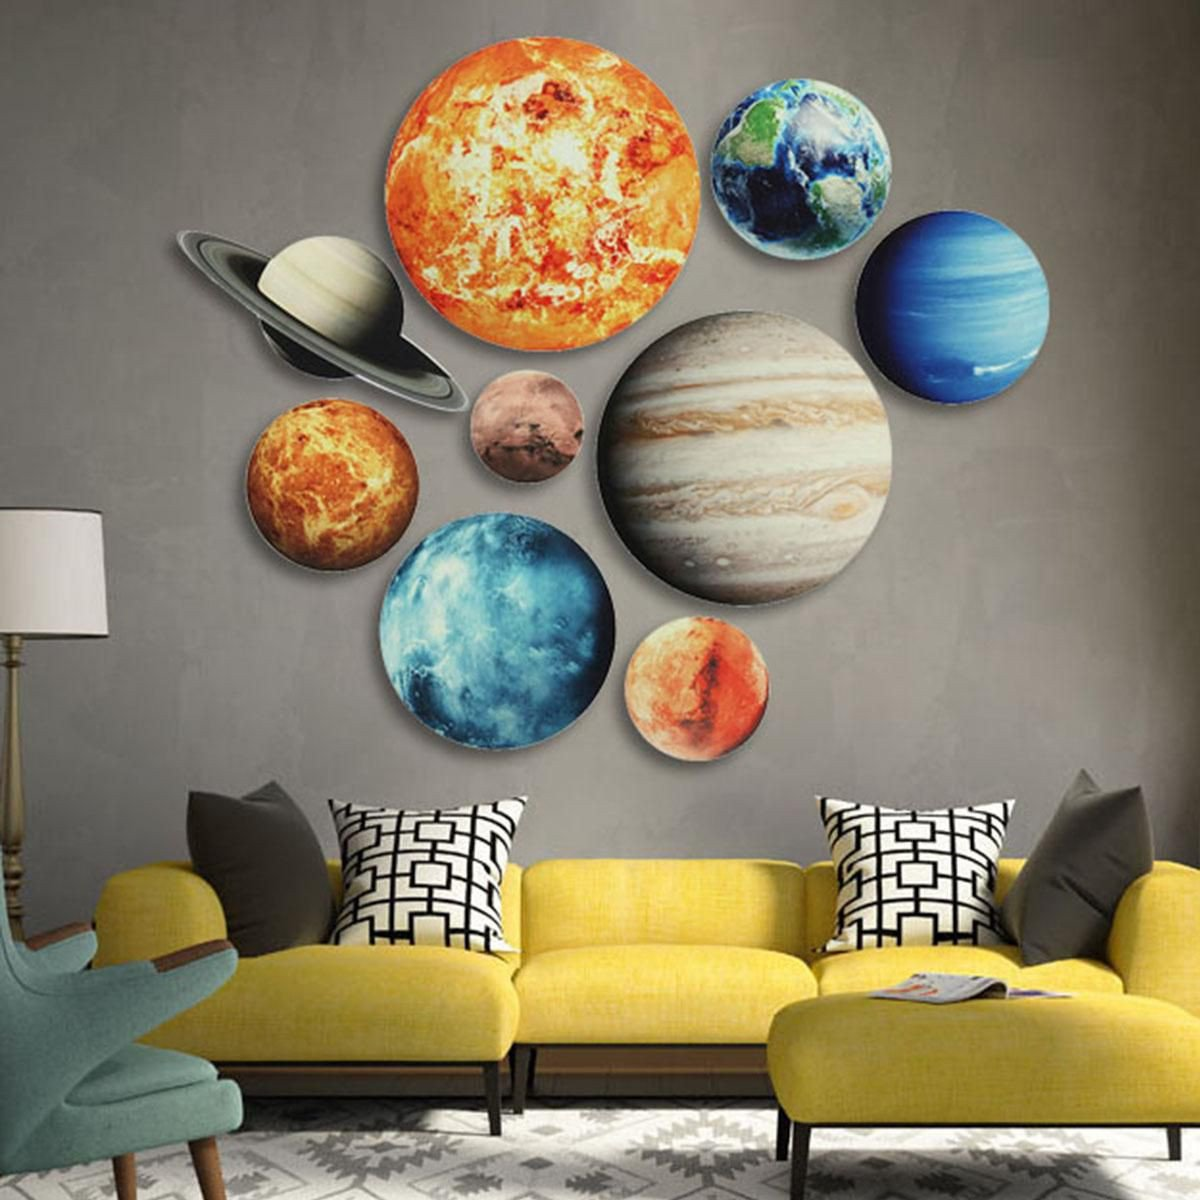 Solar System Bedroom Decor Best Of Glow In the Dark solar System Wall Stickers 9 Planets Mars